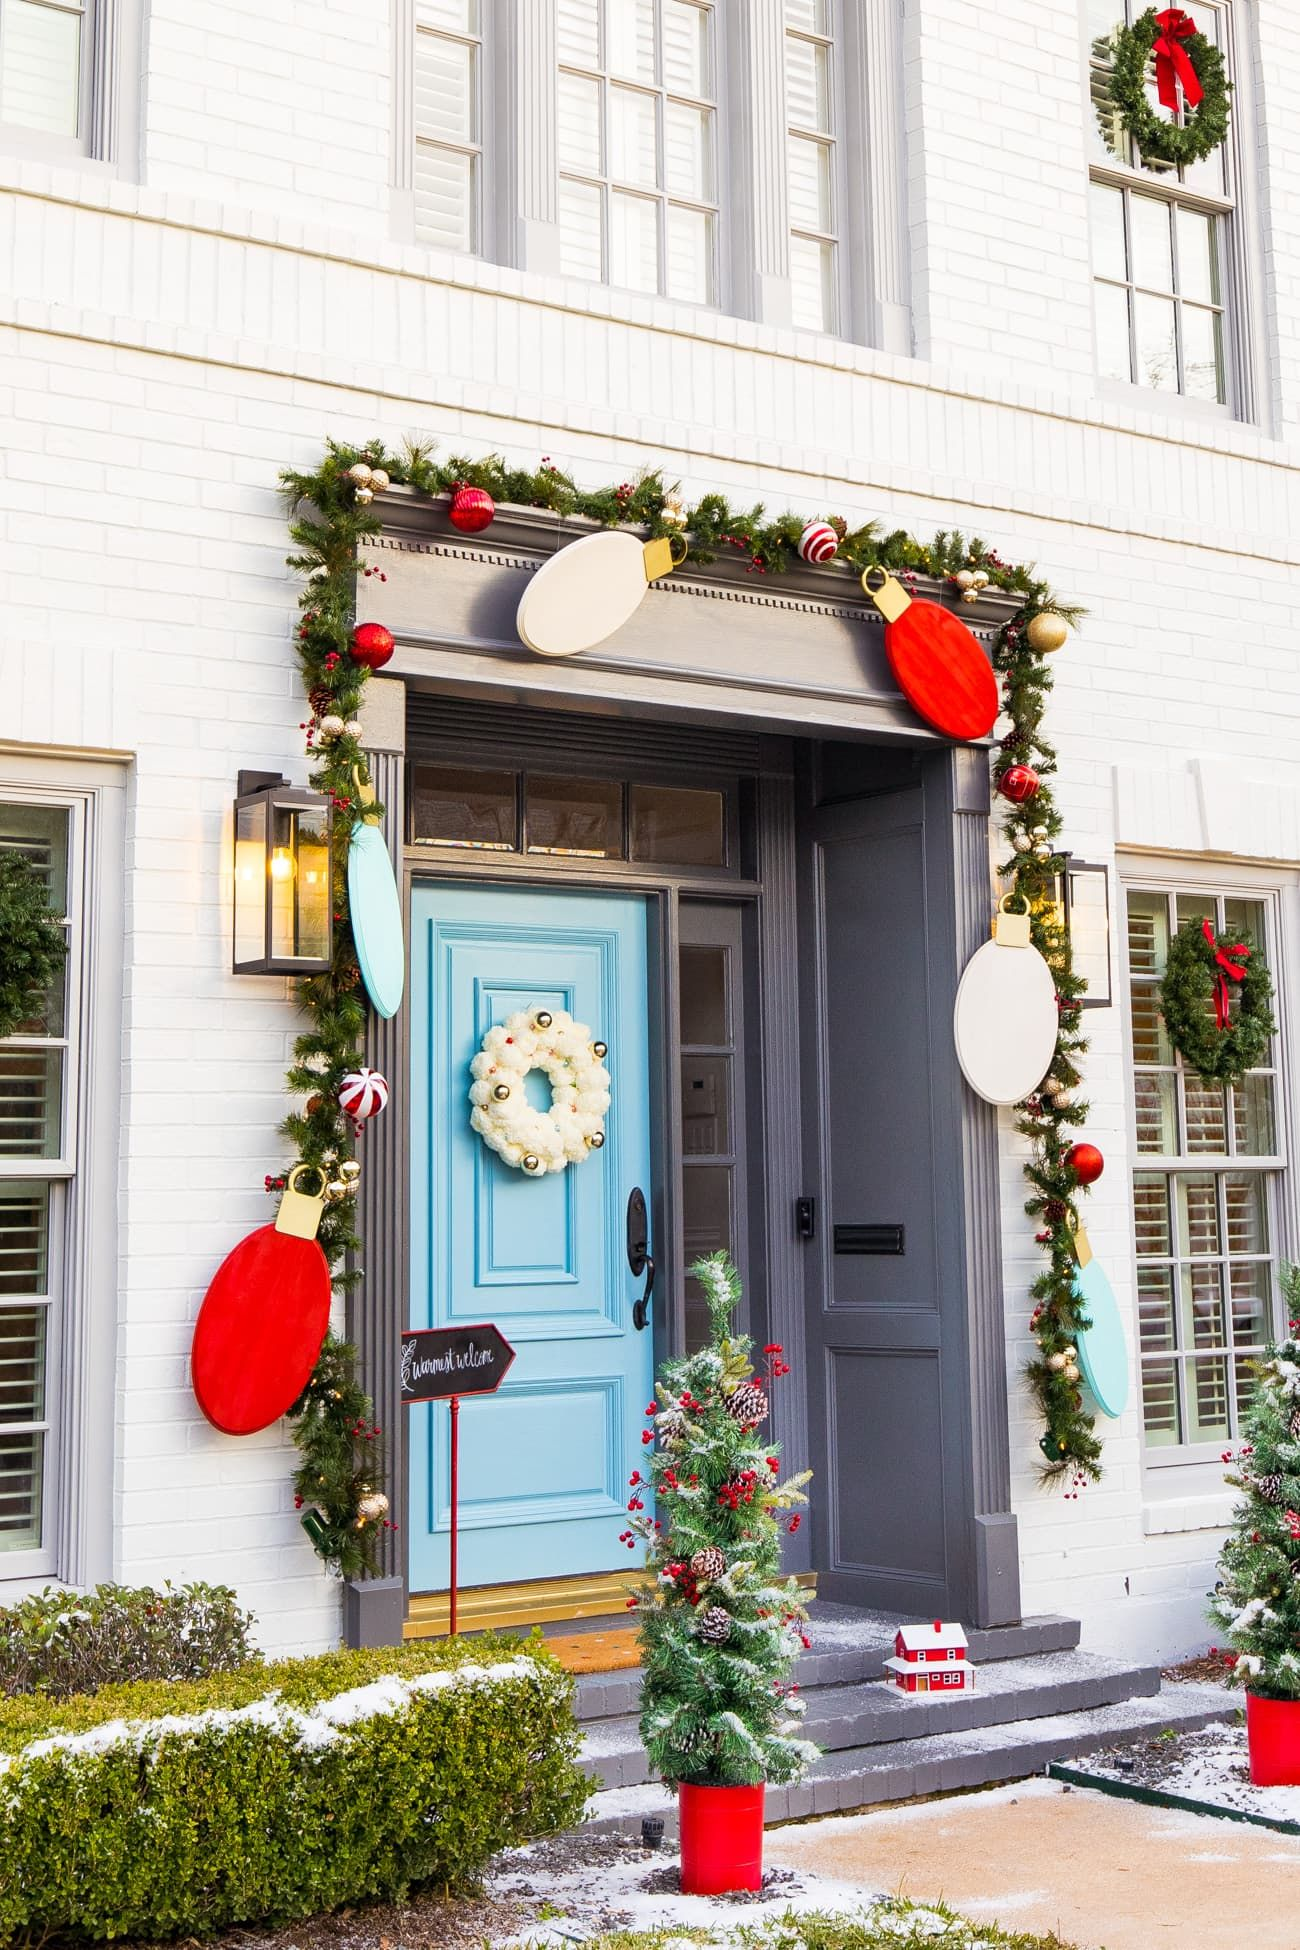 20 Best Christmas Porch Decorations Outdoor Holiday Decor Ideas